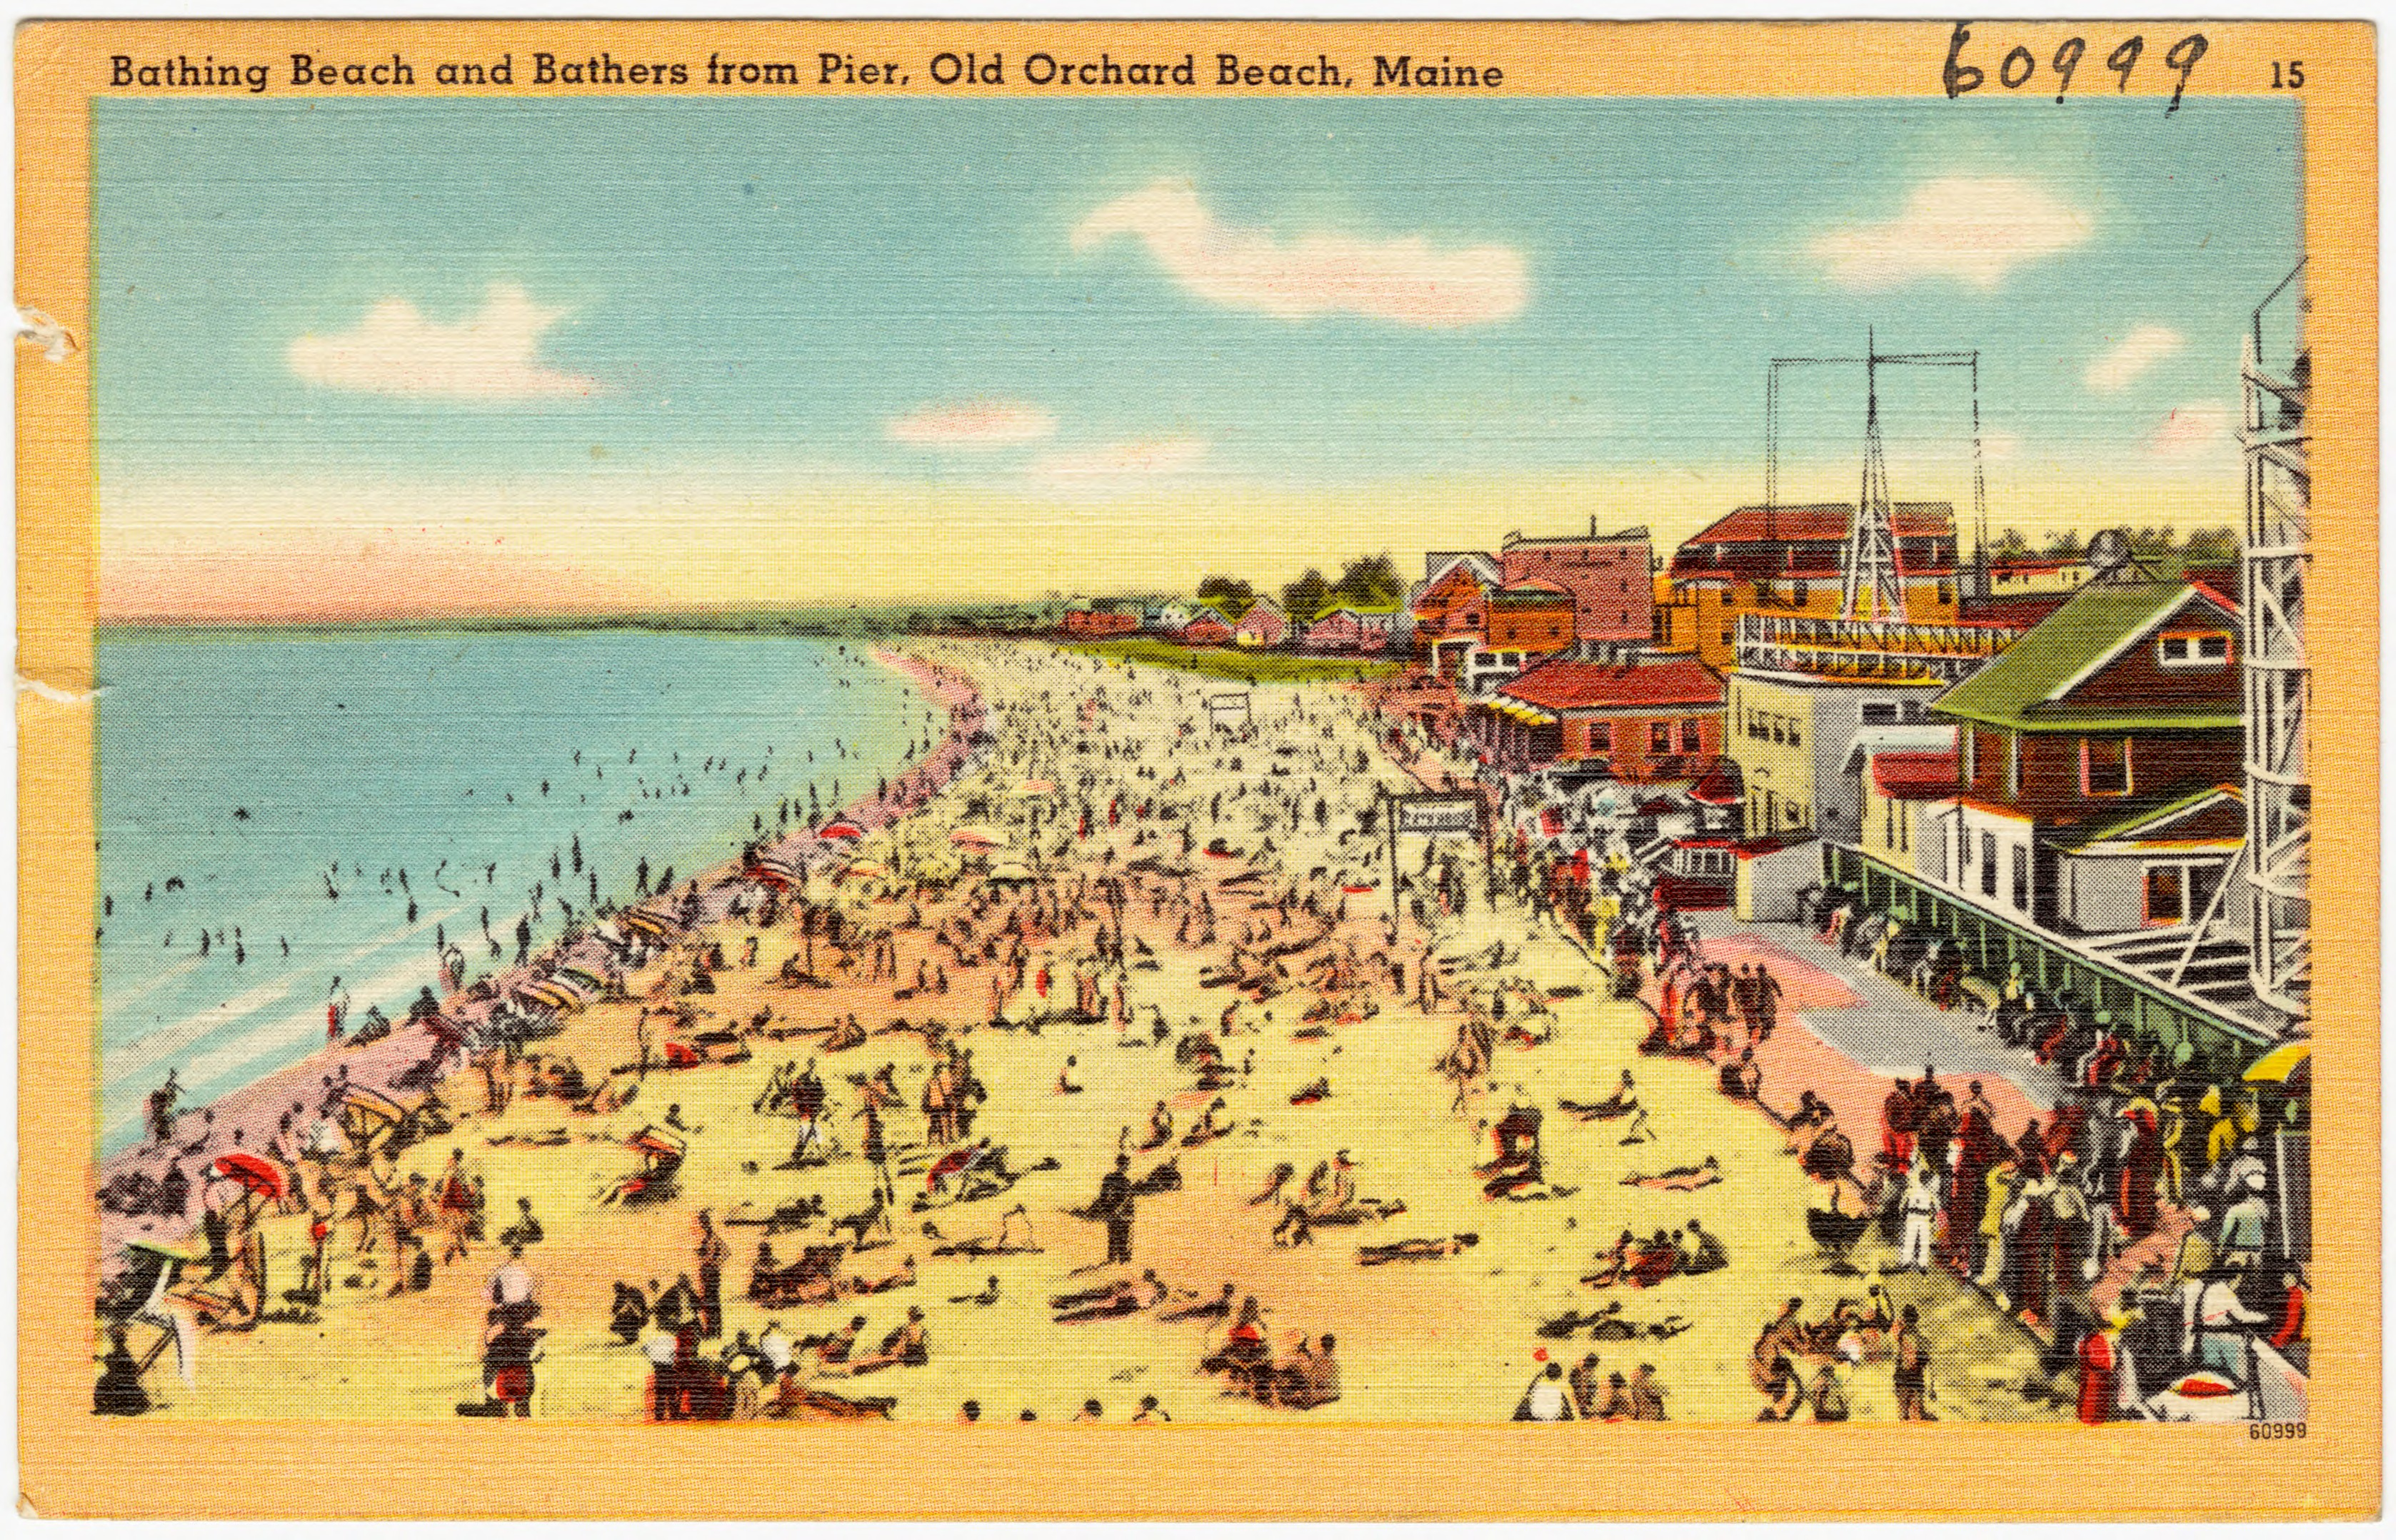 Old Orchard Beach Maine Jacuzzi Room Hotels